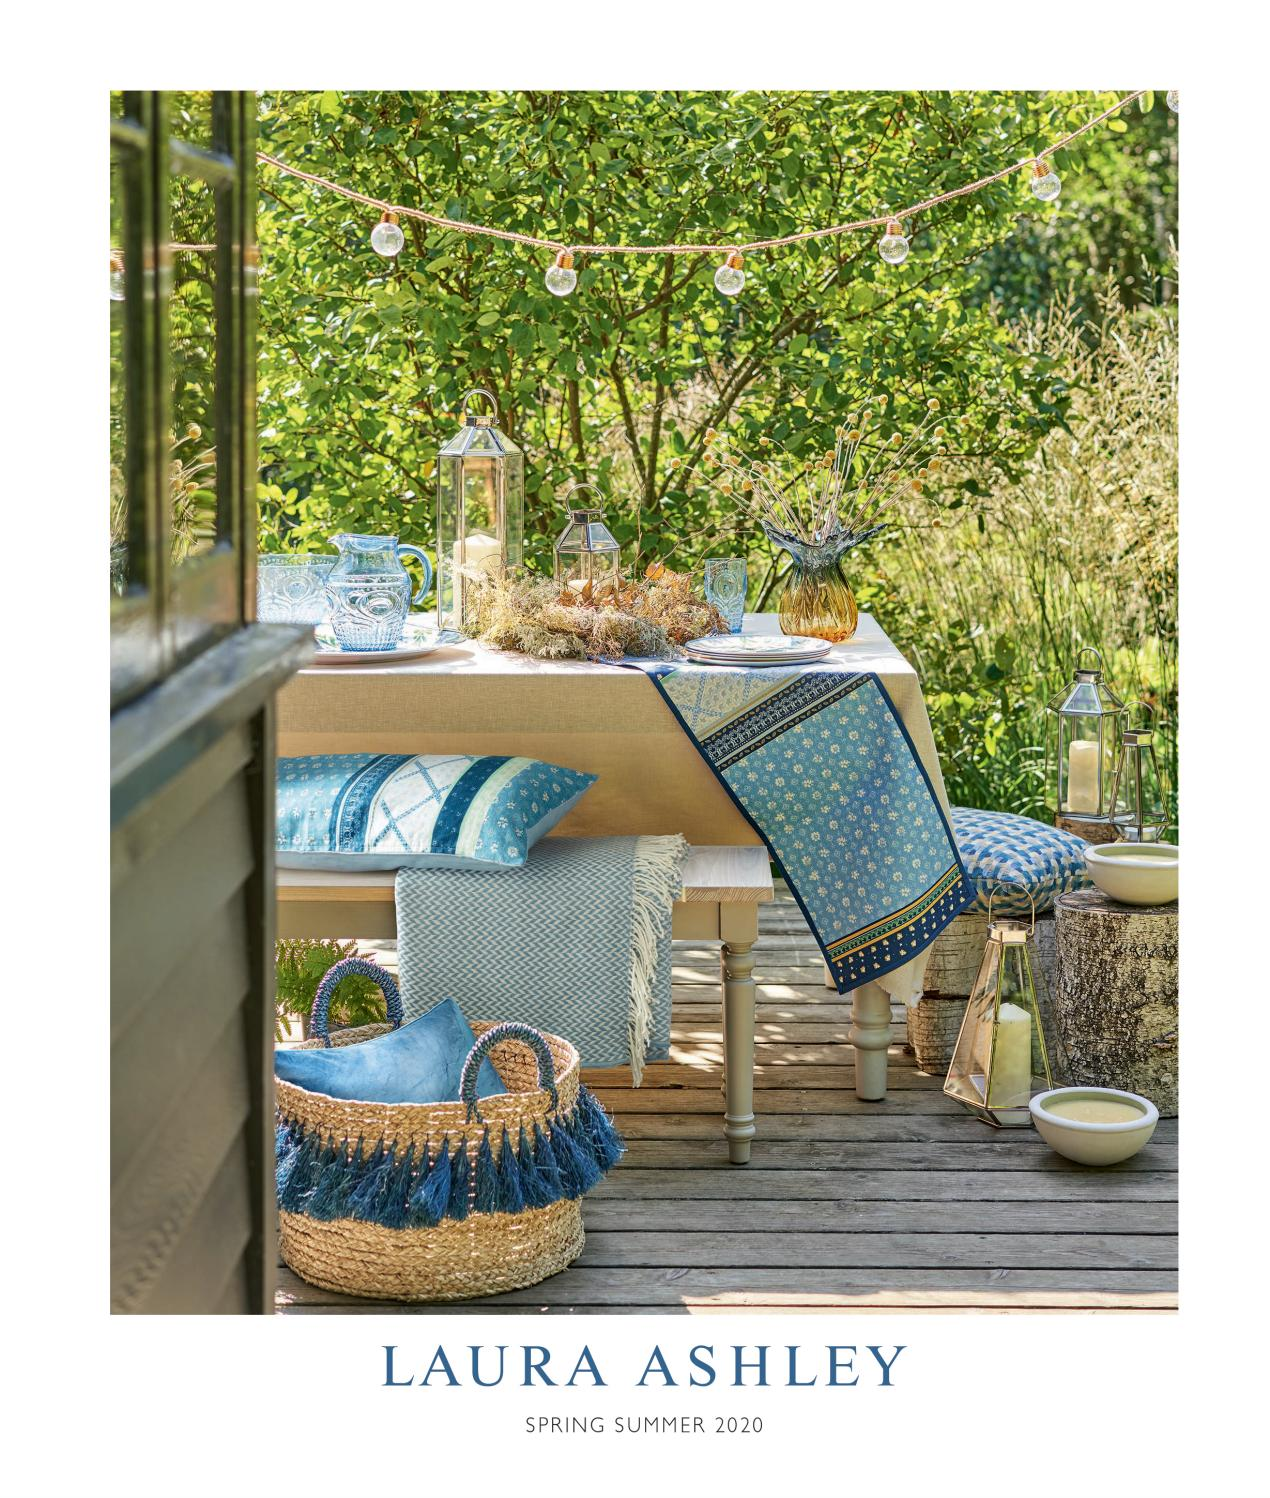 Laura Ashley Home Spring Summer 2020 Catalogue By Sandpiper Ci Issuu